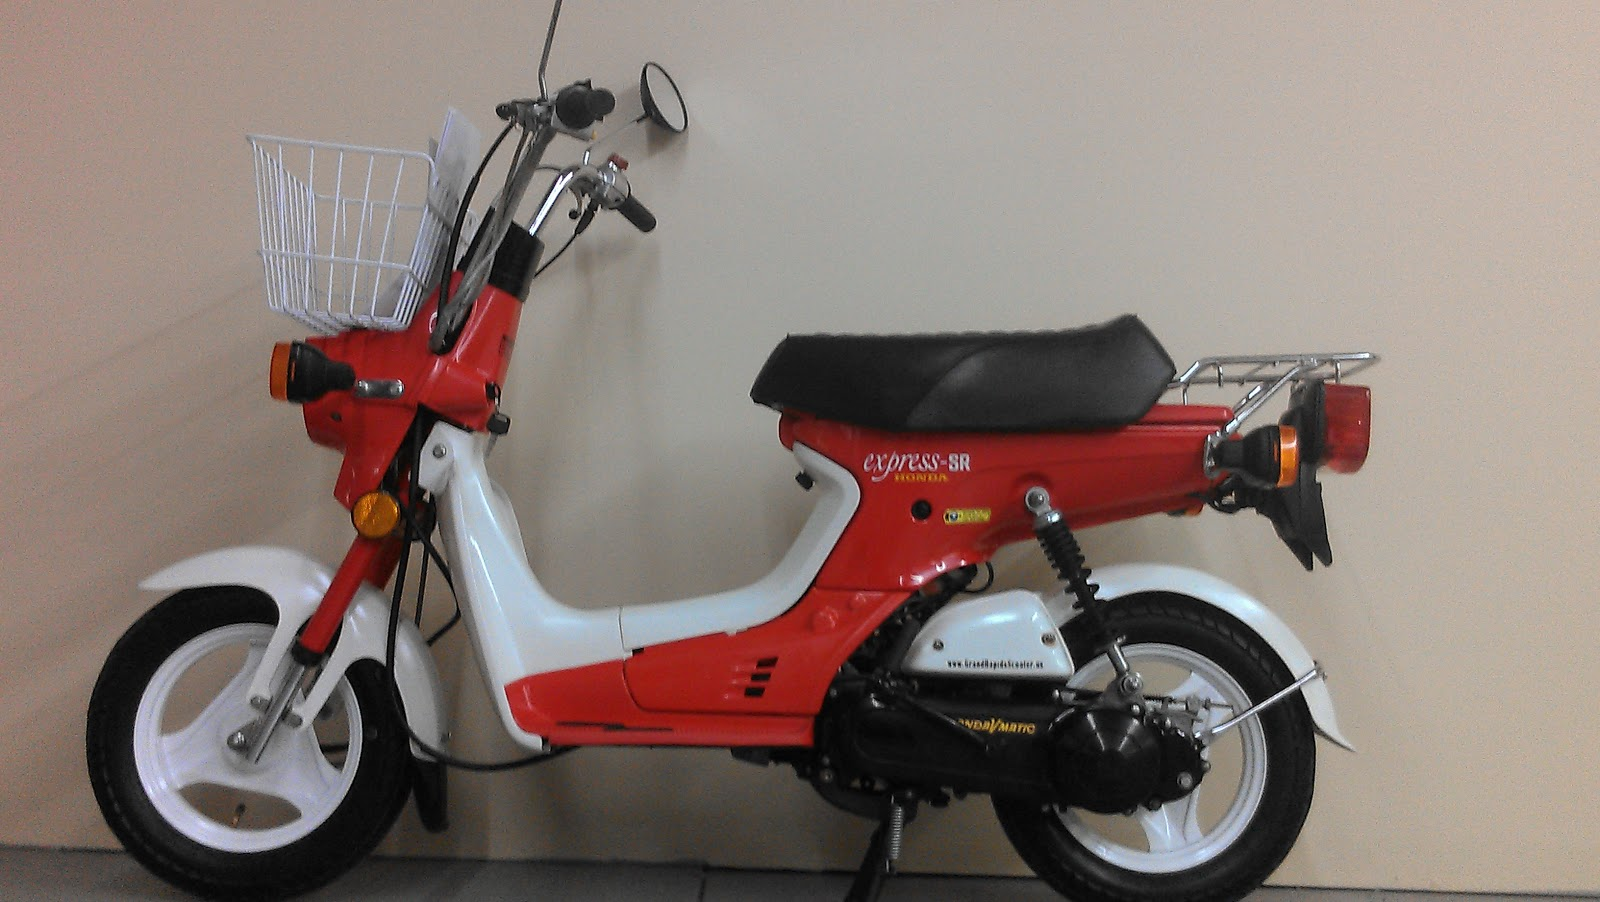 1981 Honda Express SR moped scooters RARE  Grand Rapids Scooter